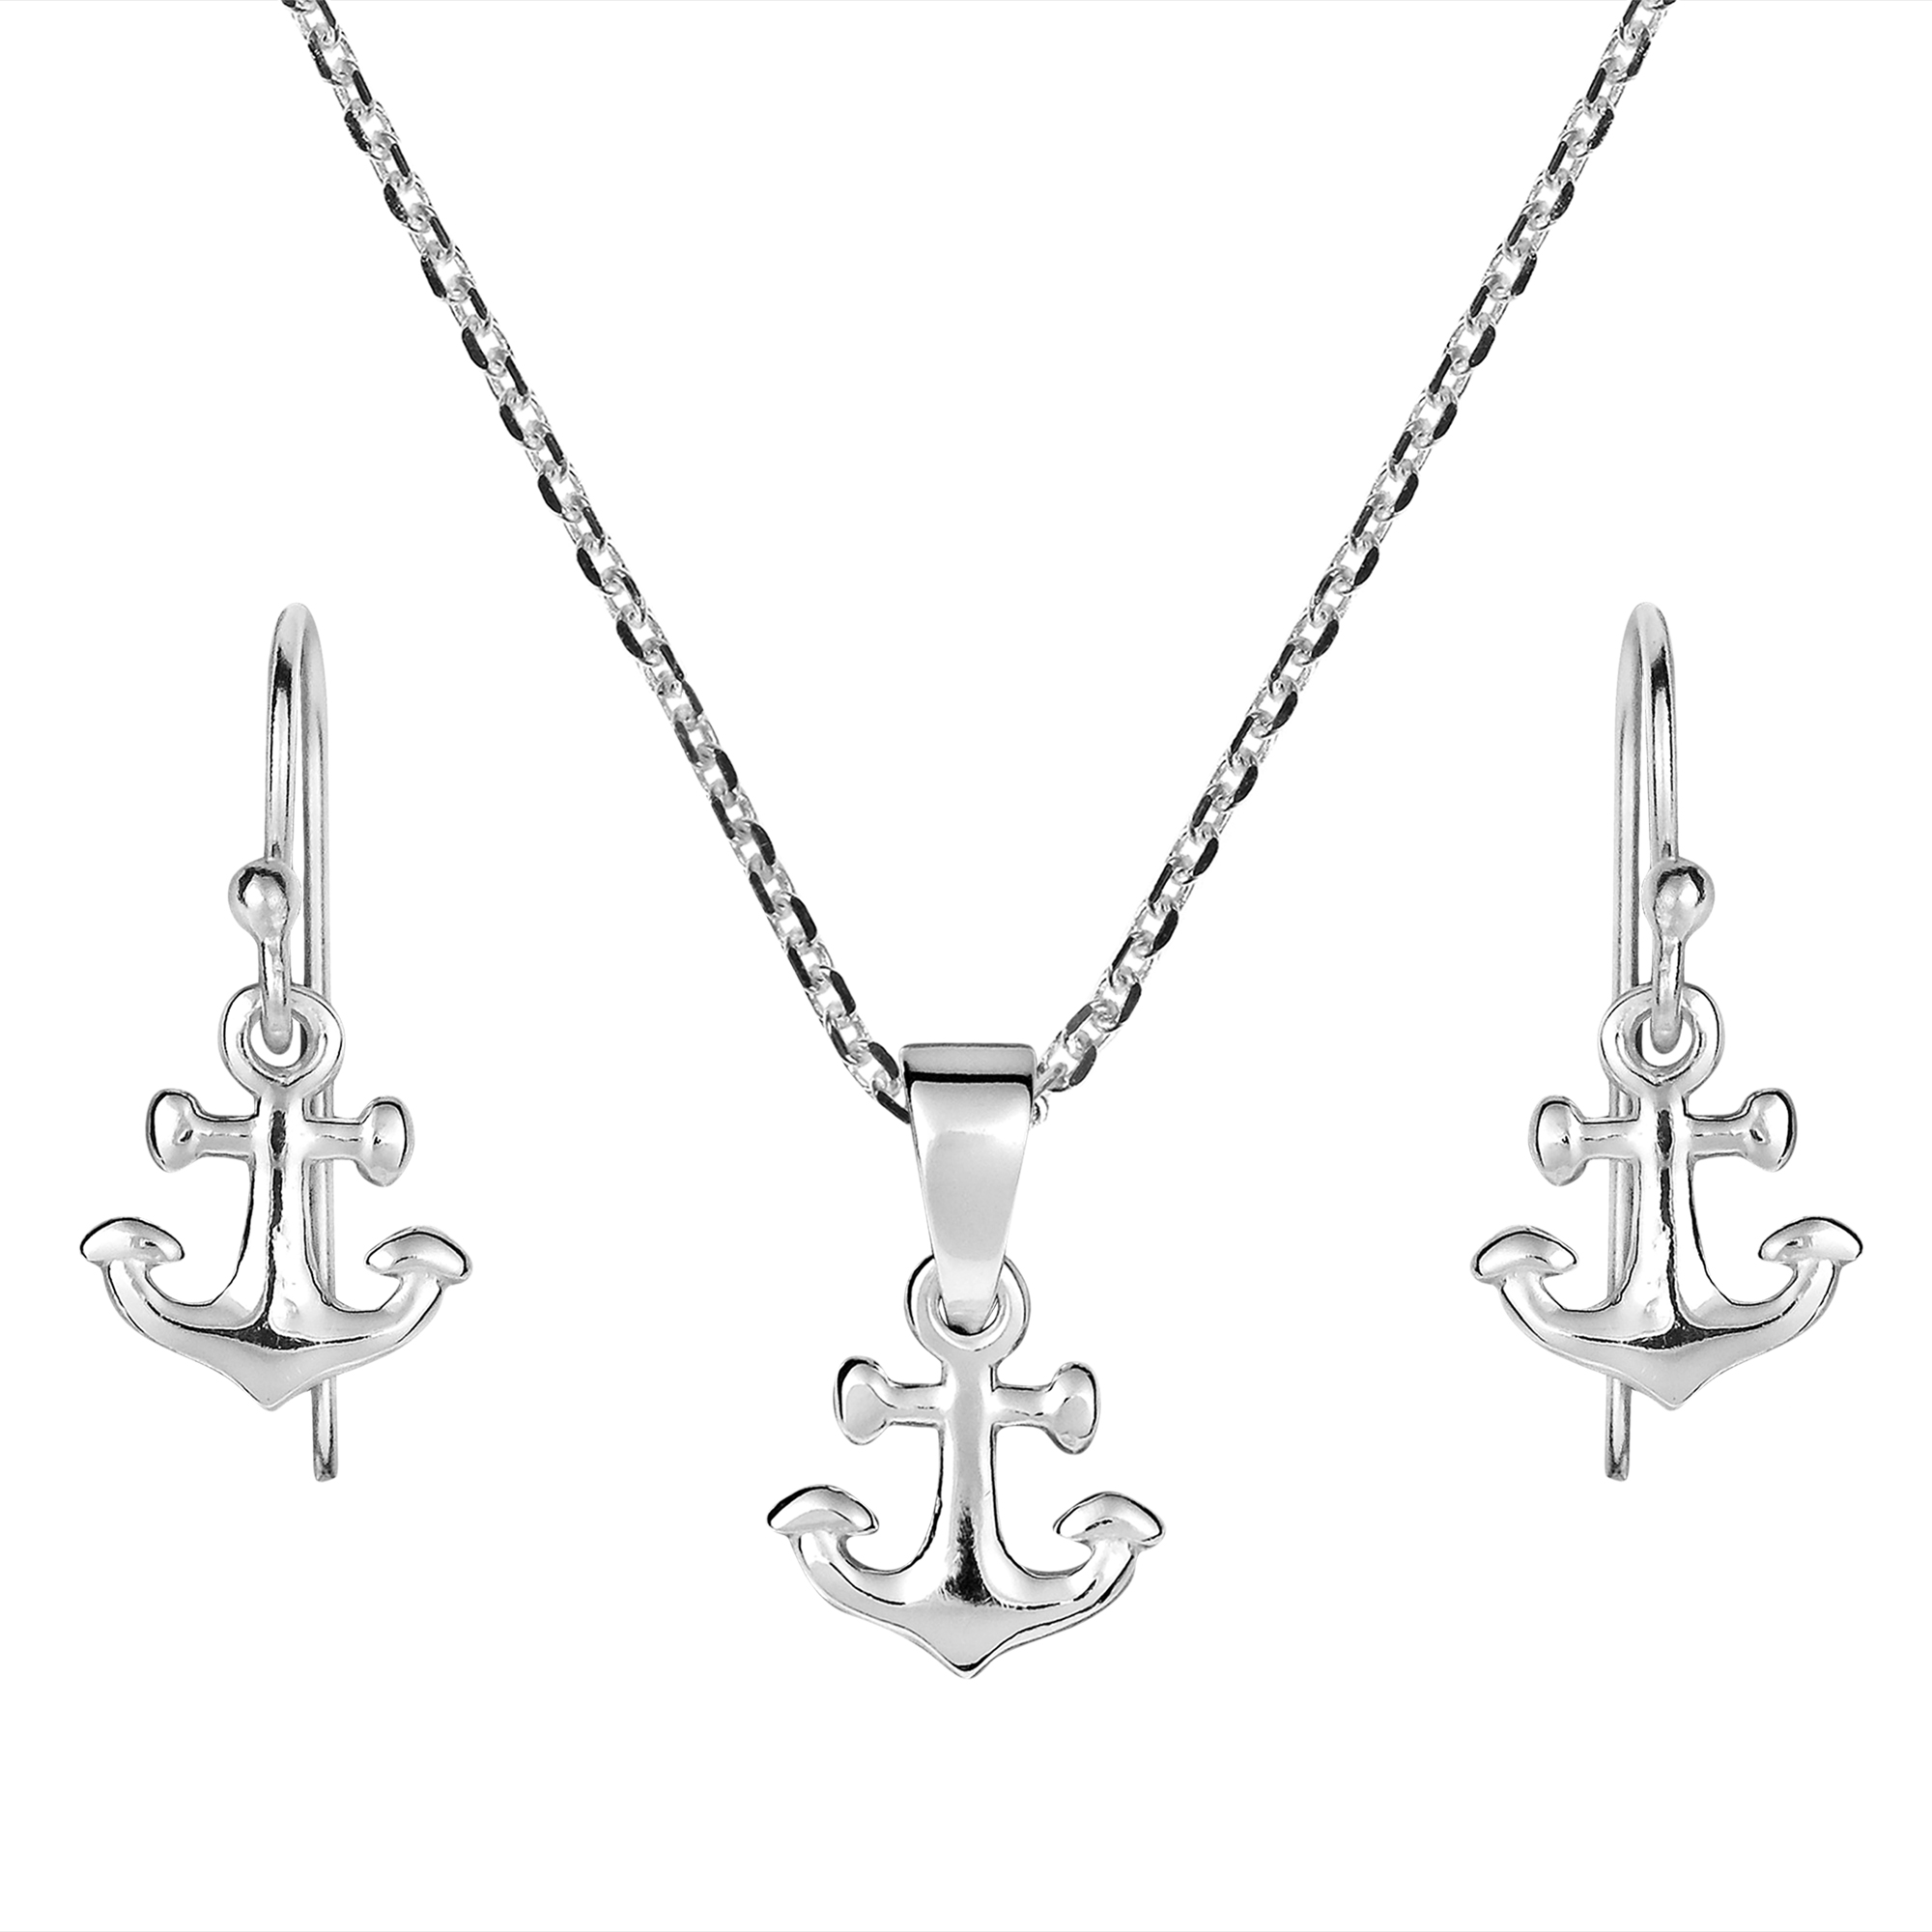 mens anchor s silver necklace him original necklaces jewelry gift product men for